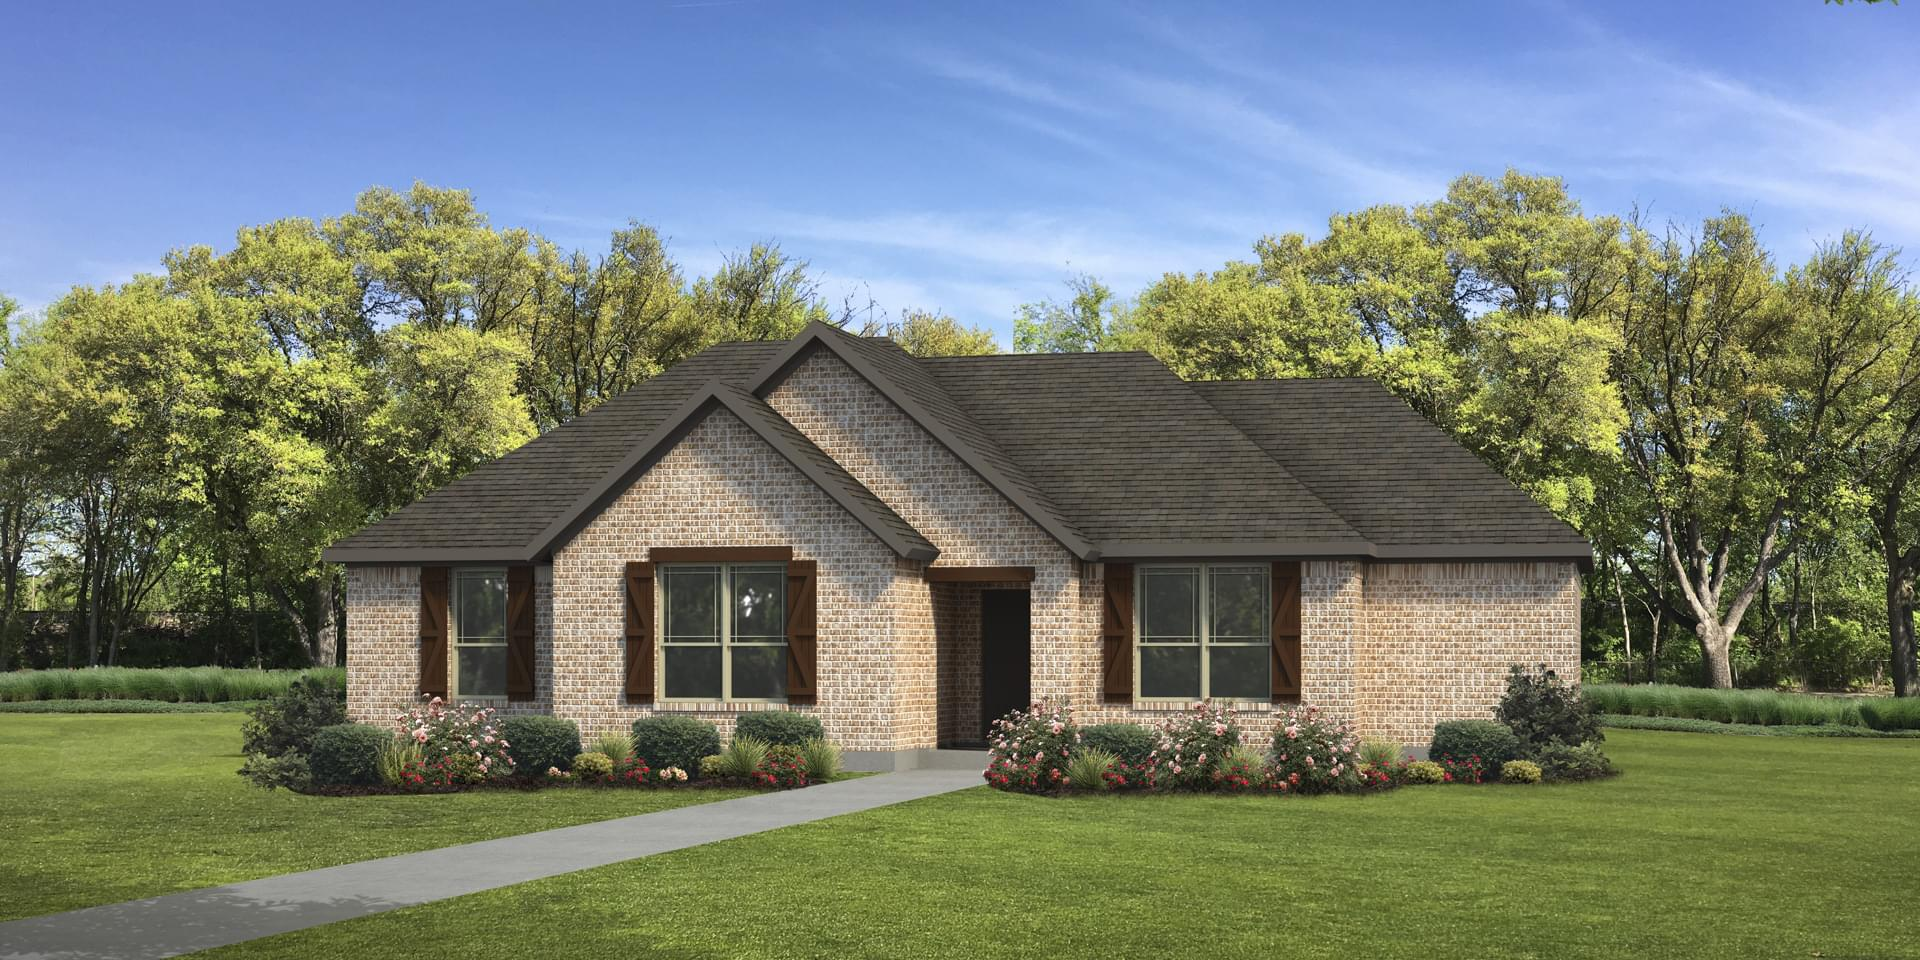 The Nacogdoches Custom Home Plan from Tilson Homes